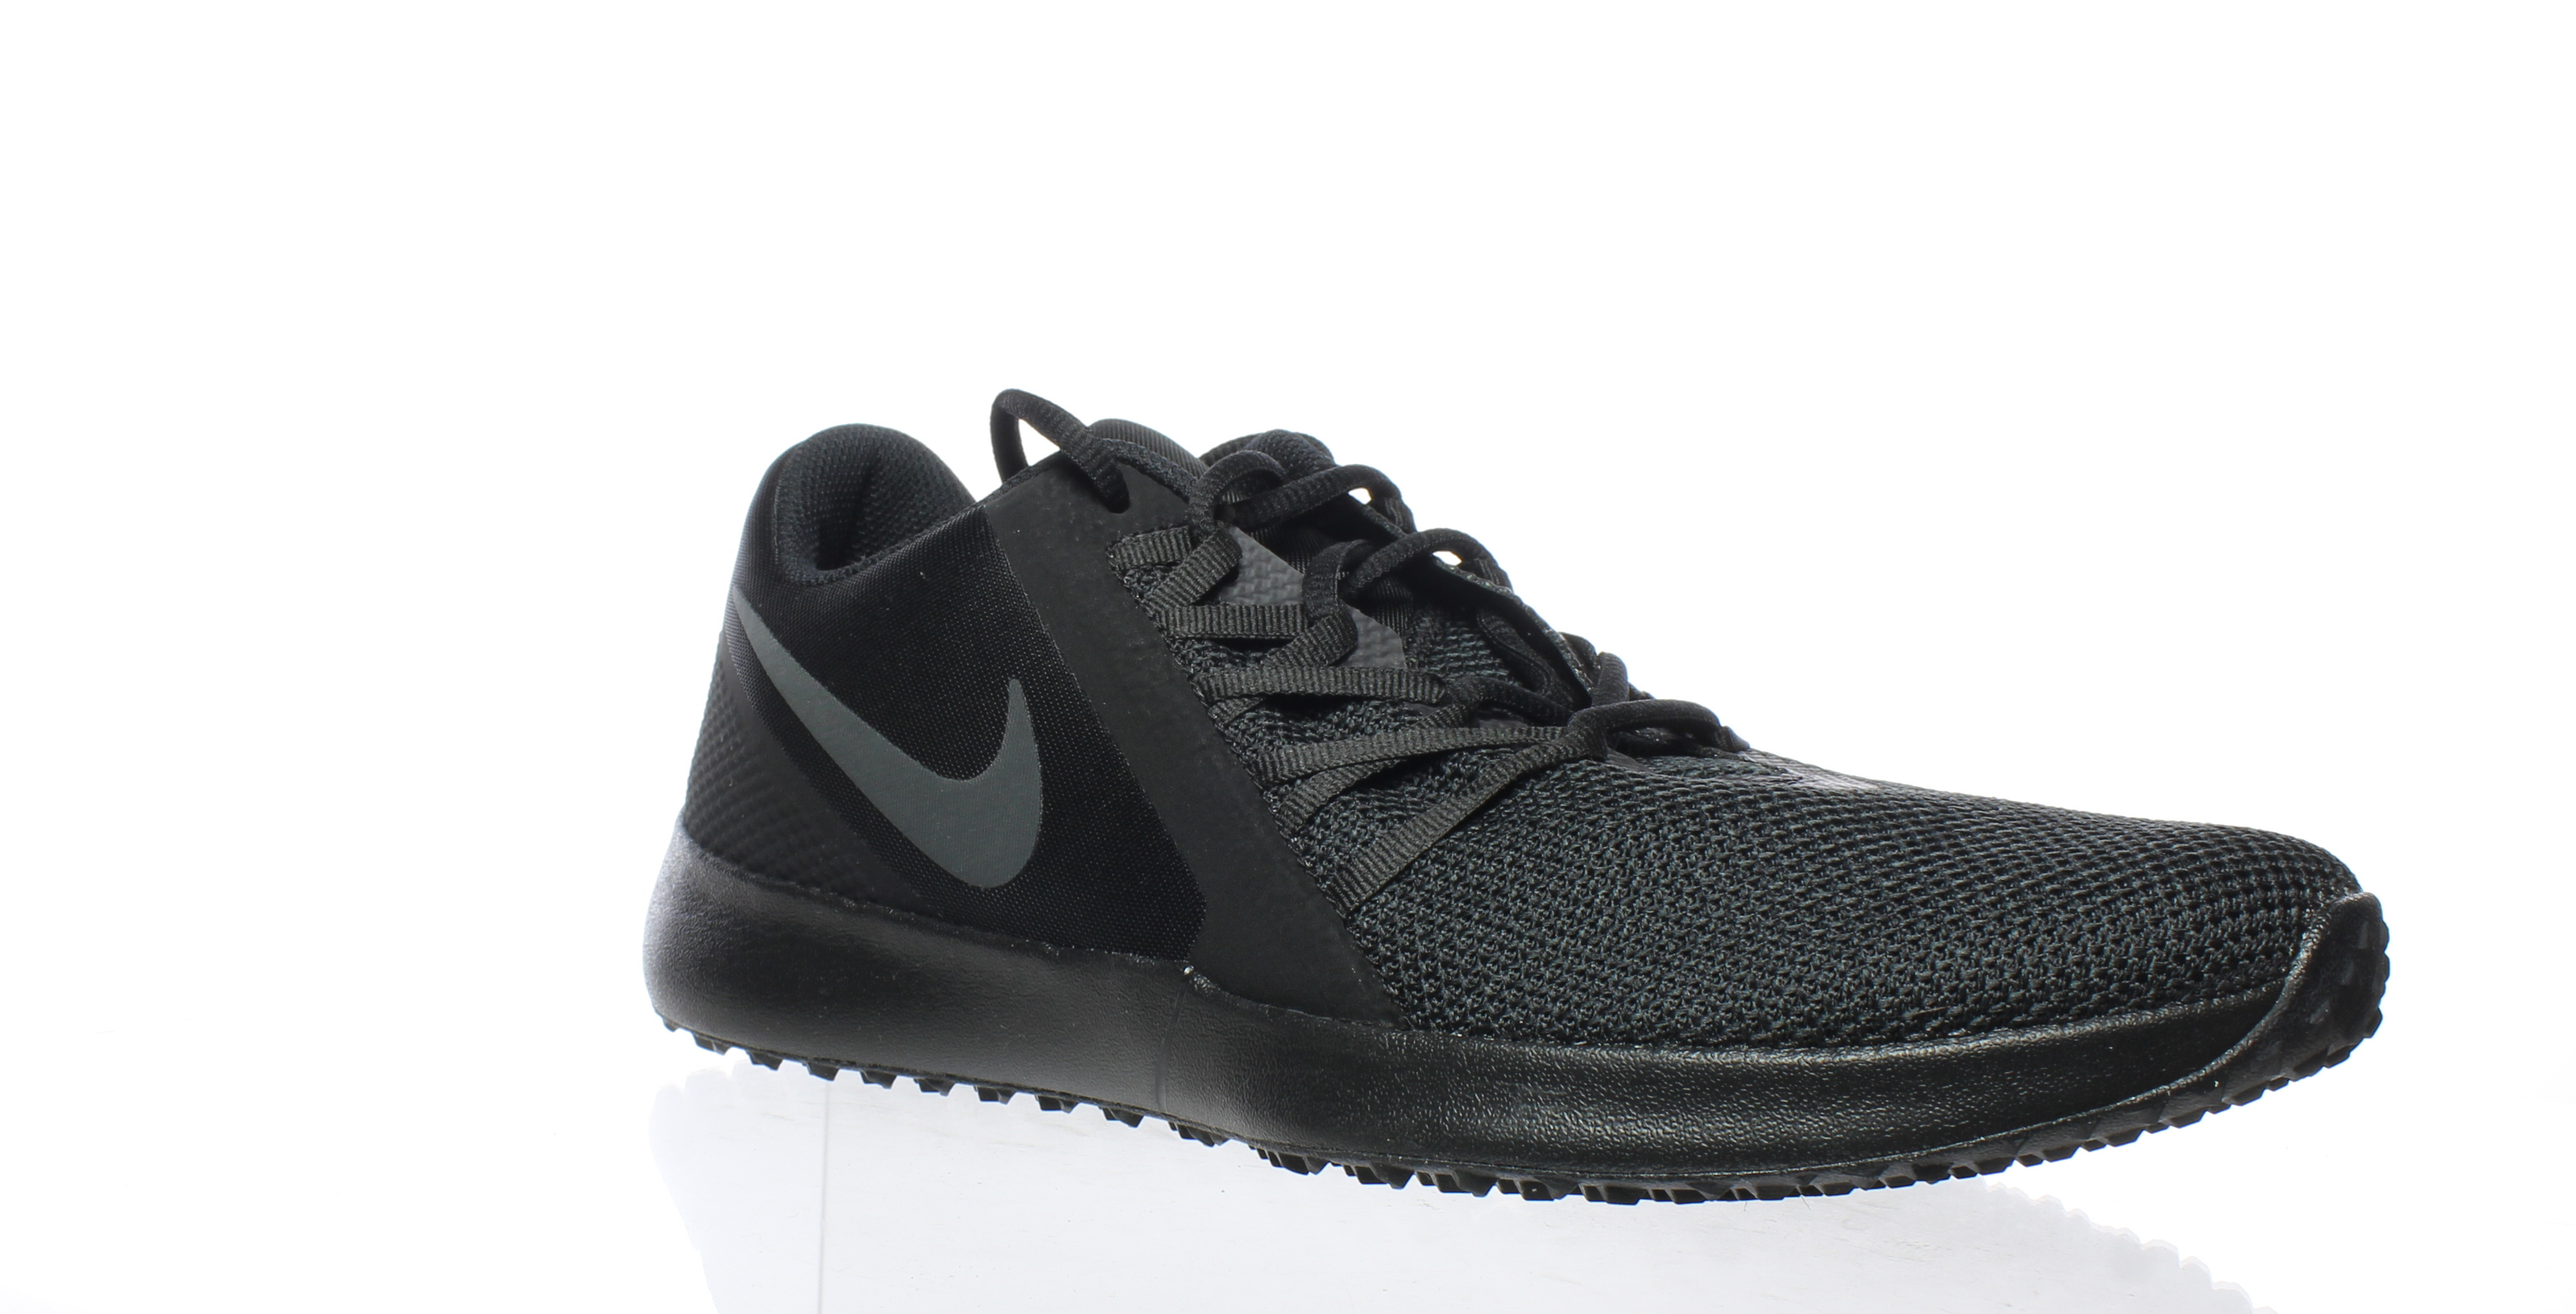 online retailer a814a 4a631 Nike MENS Varsity Compete Trainer Black Size 10 (172506)